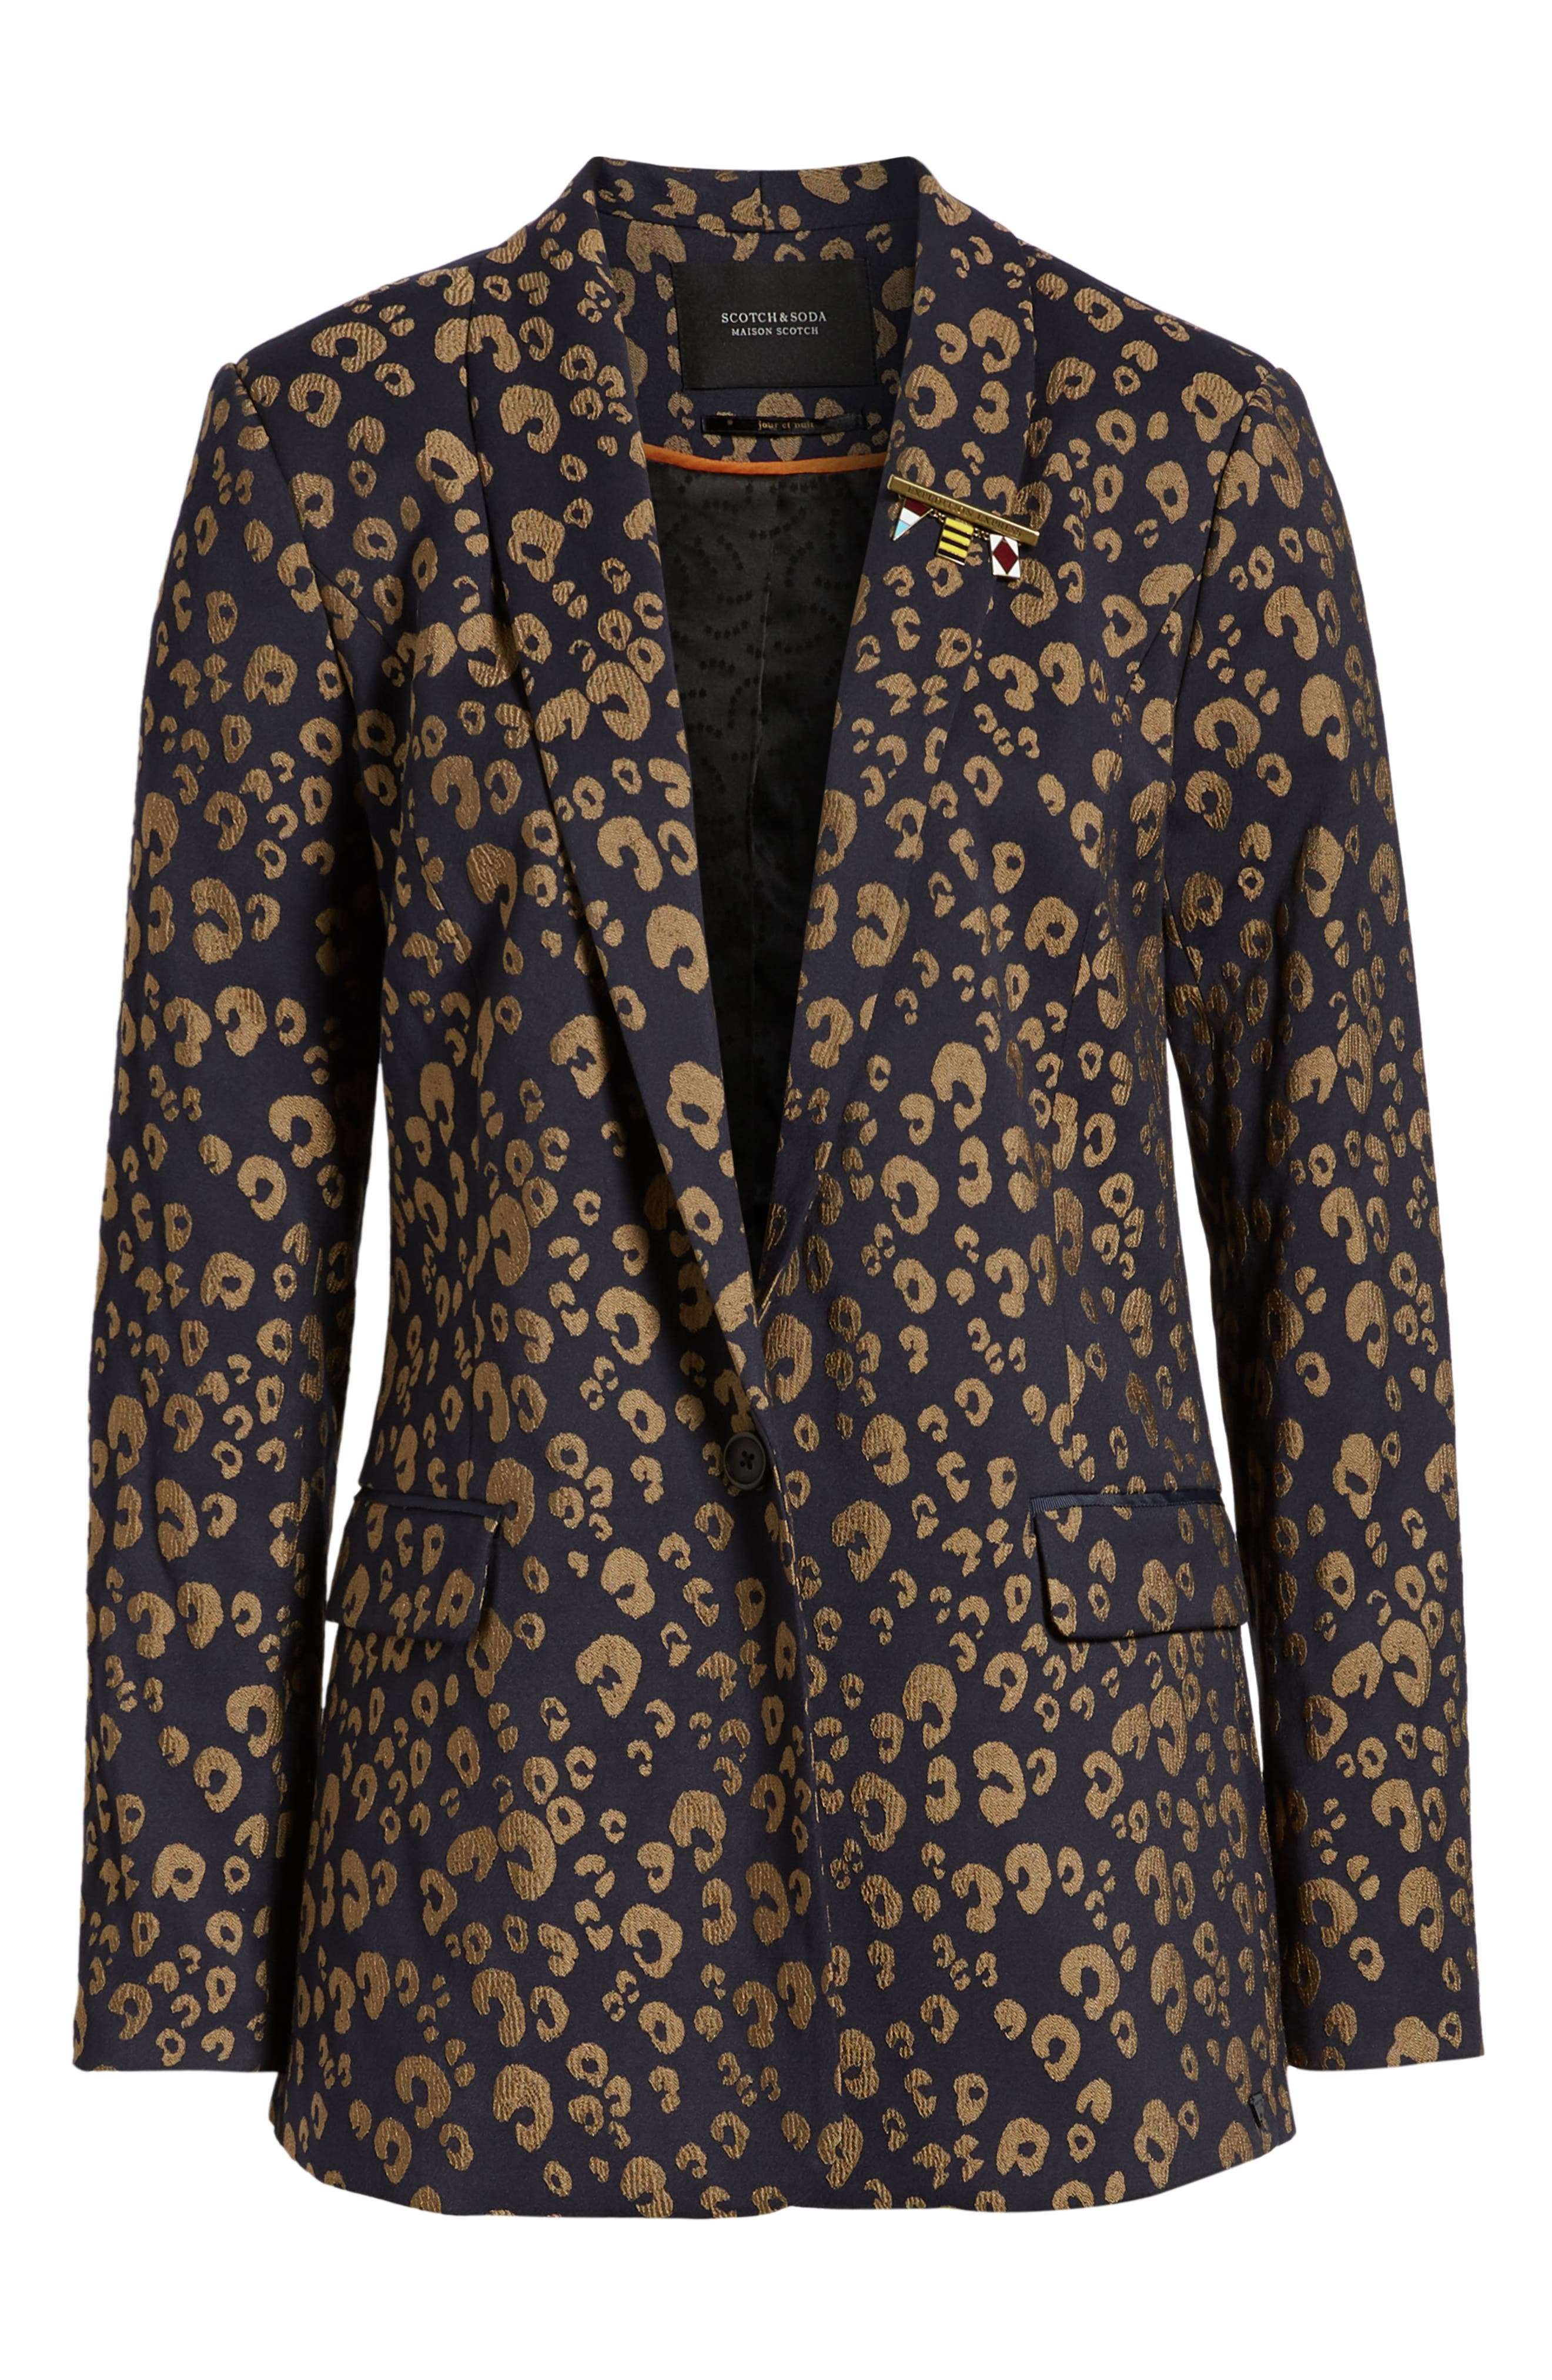 Stretch Jacquard Tailored Blazer,                             Alternate thumbnail 5, color,                             NAVY W/ GOLD LEOPARD PRINT